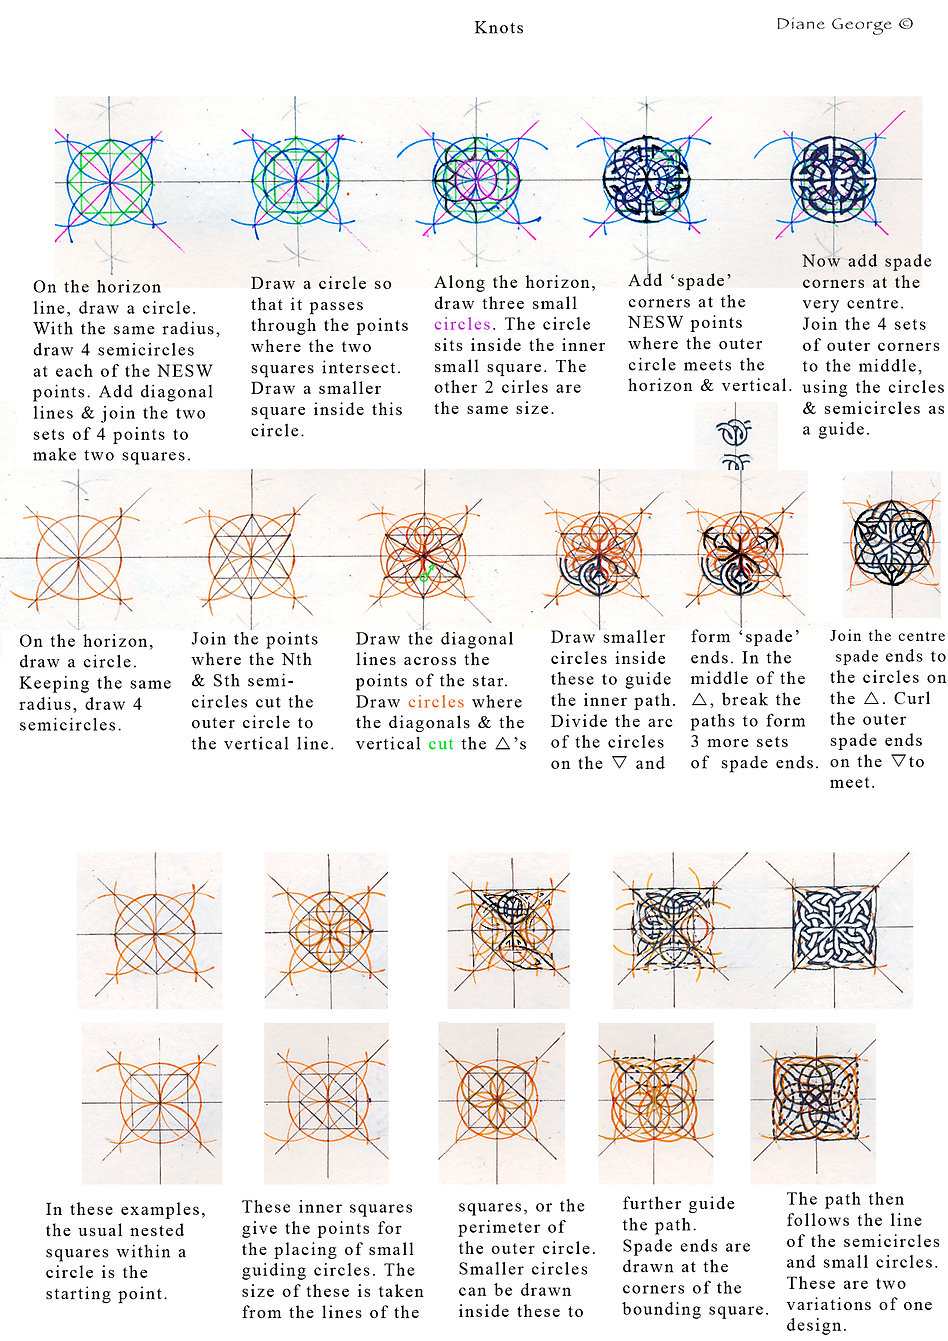 Further examples of knotwork construction